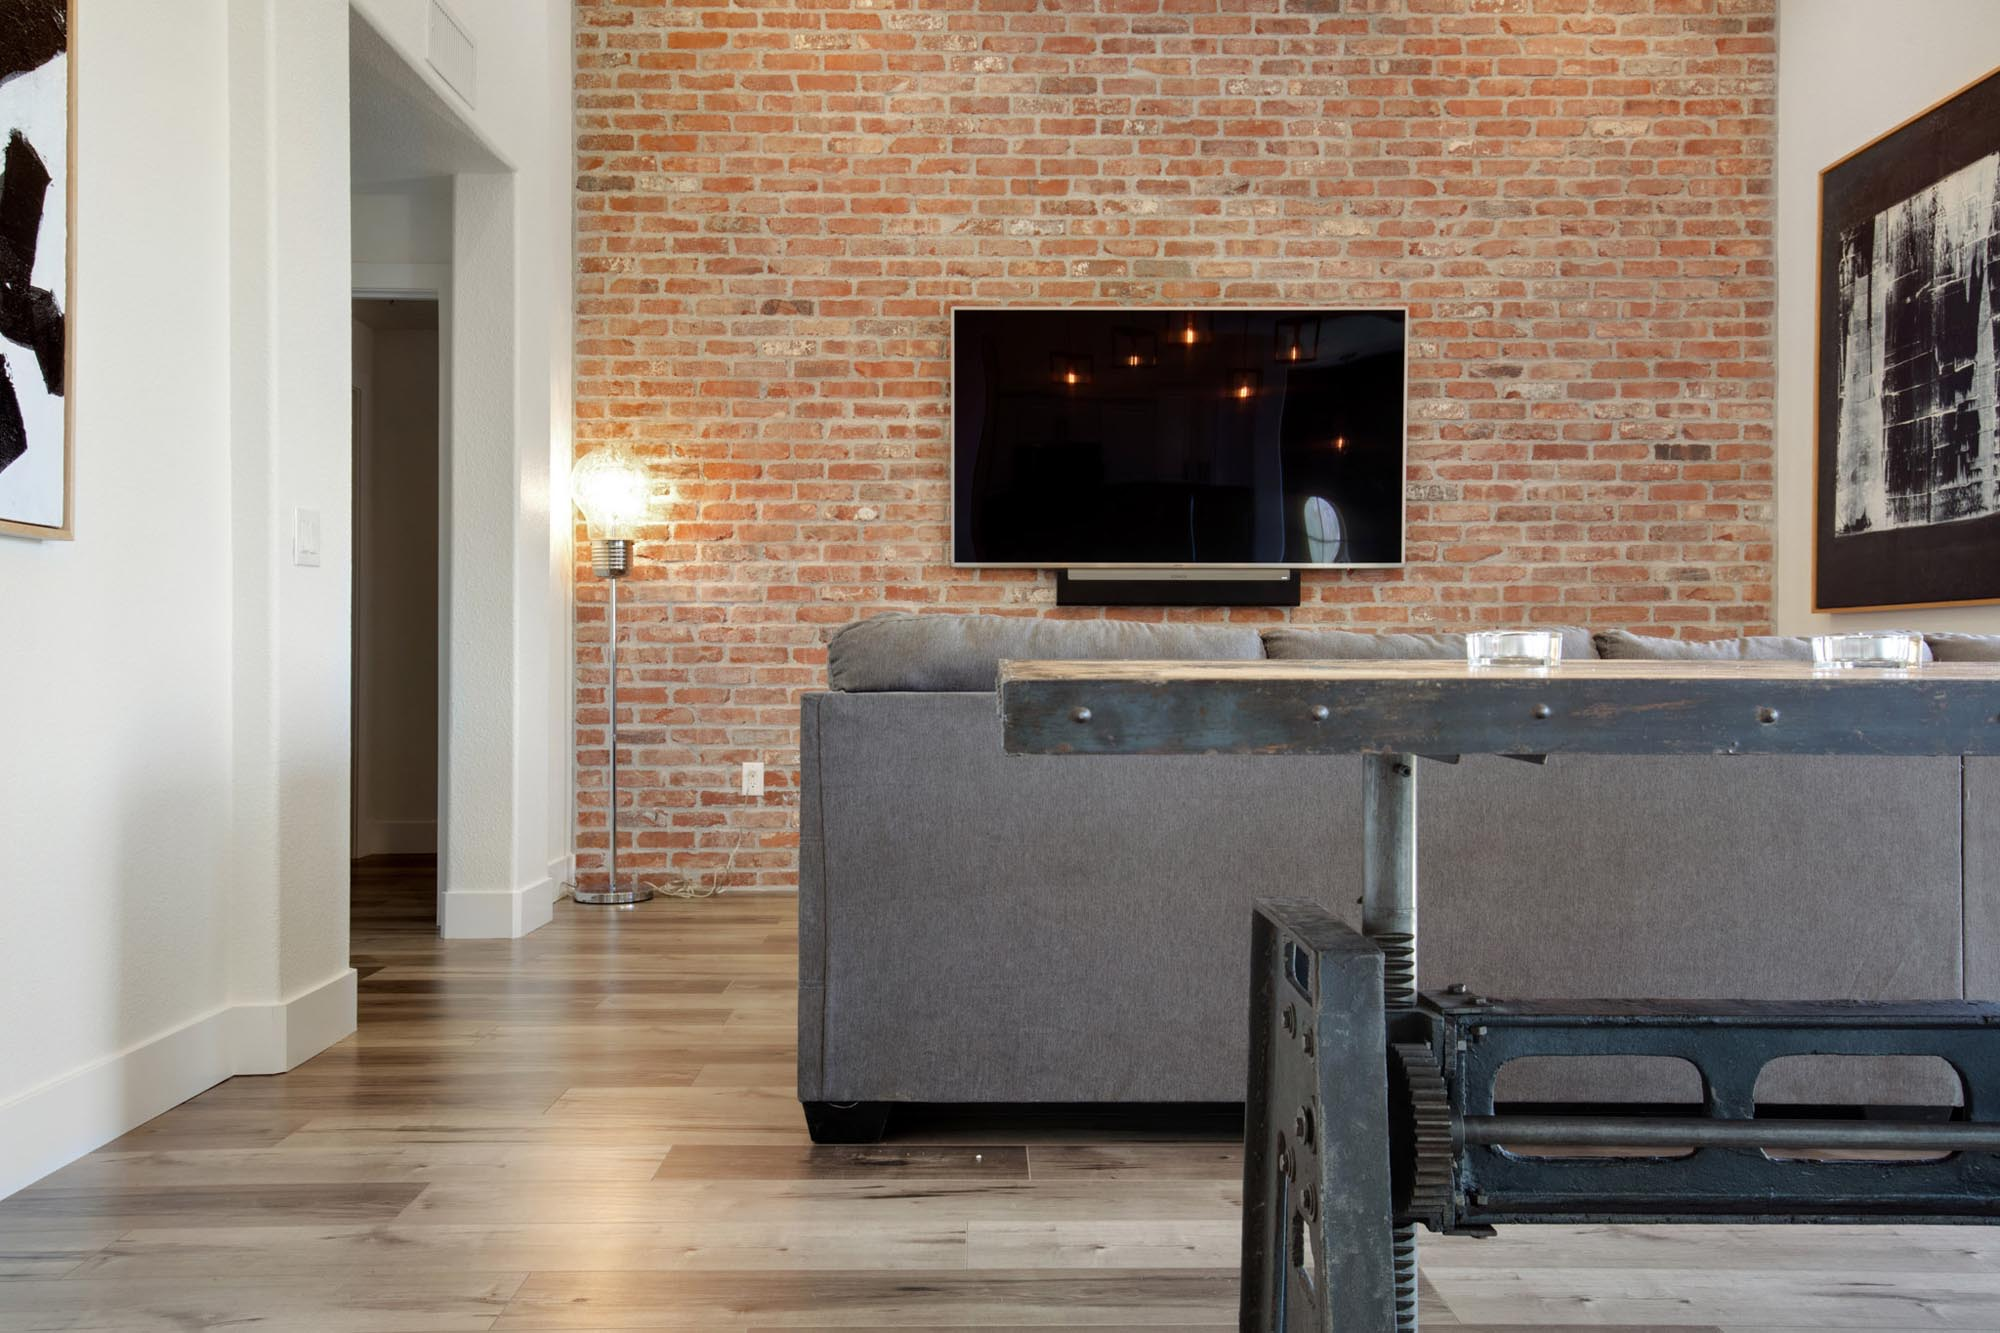 Living room with television and floor lamp